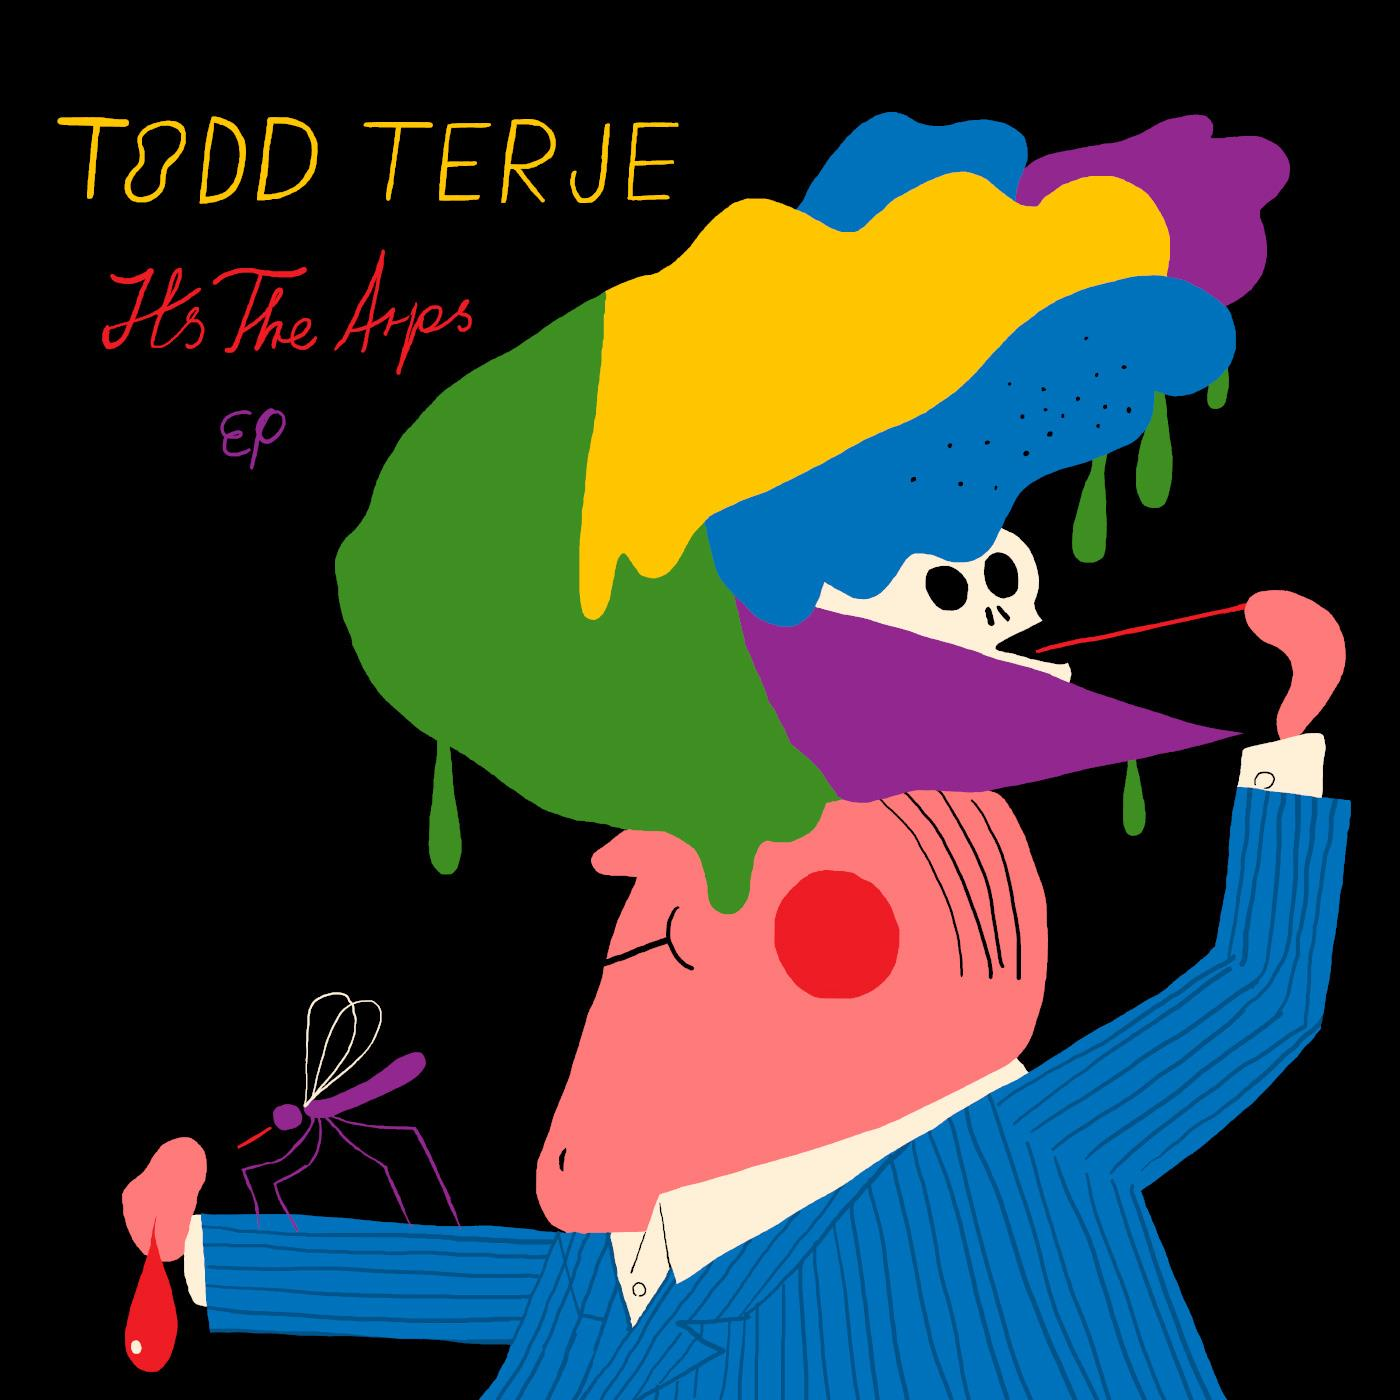 OLS001 Olsen  Todd Terje It's the Arps (12'')